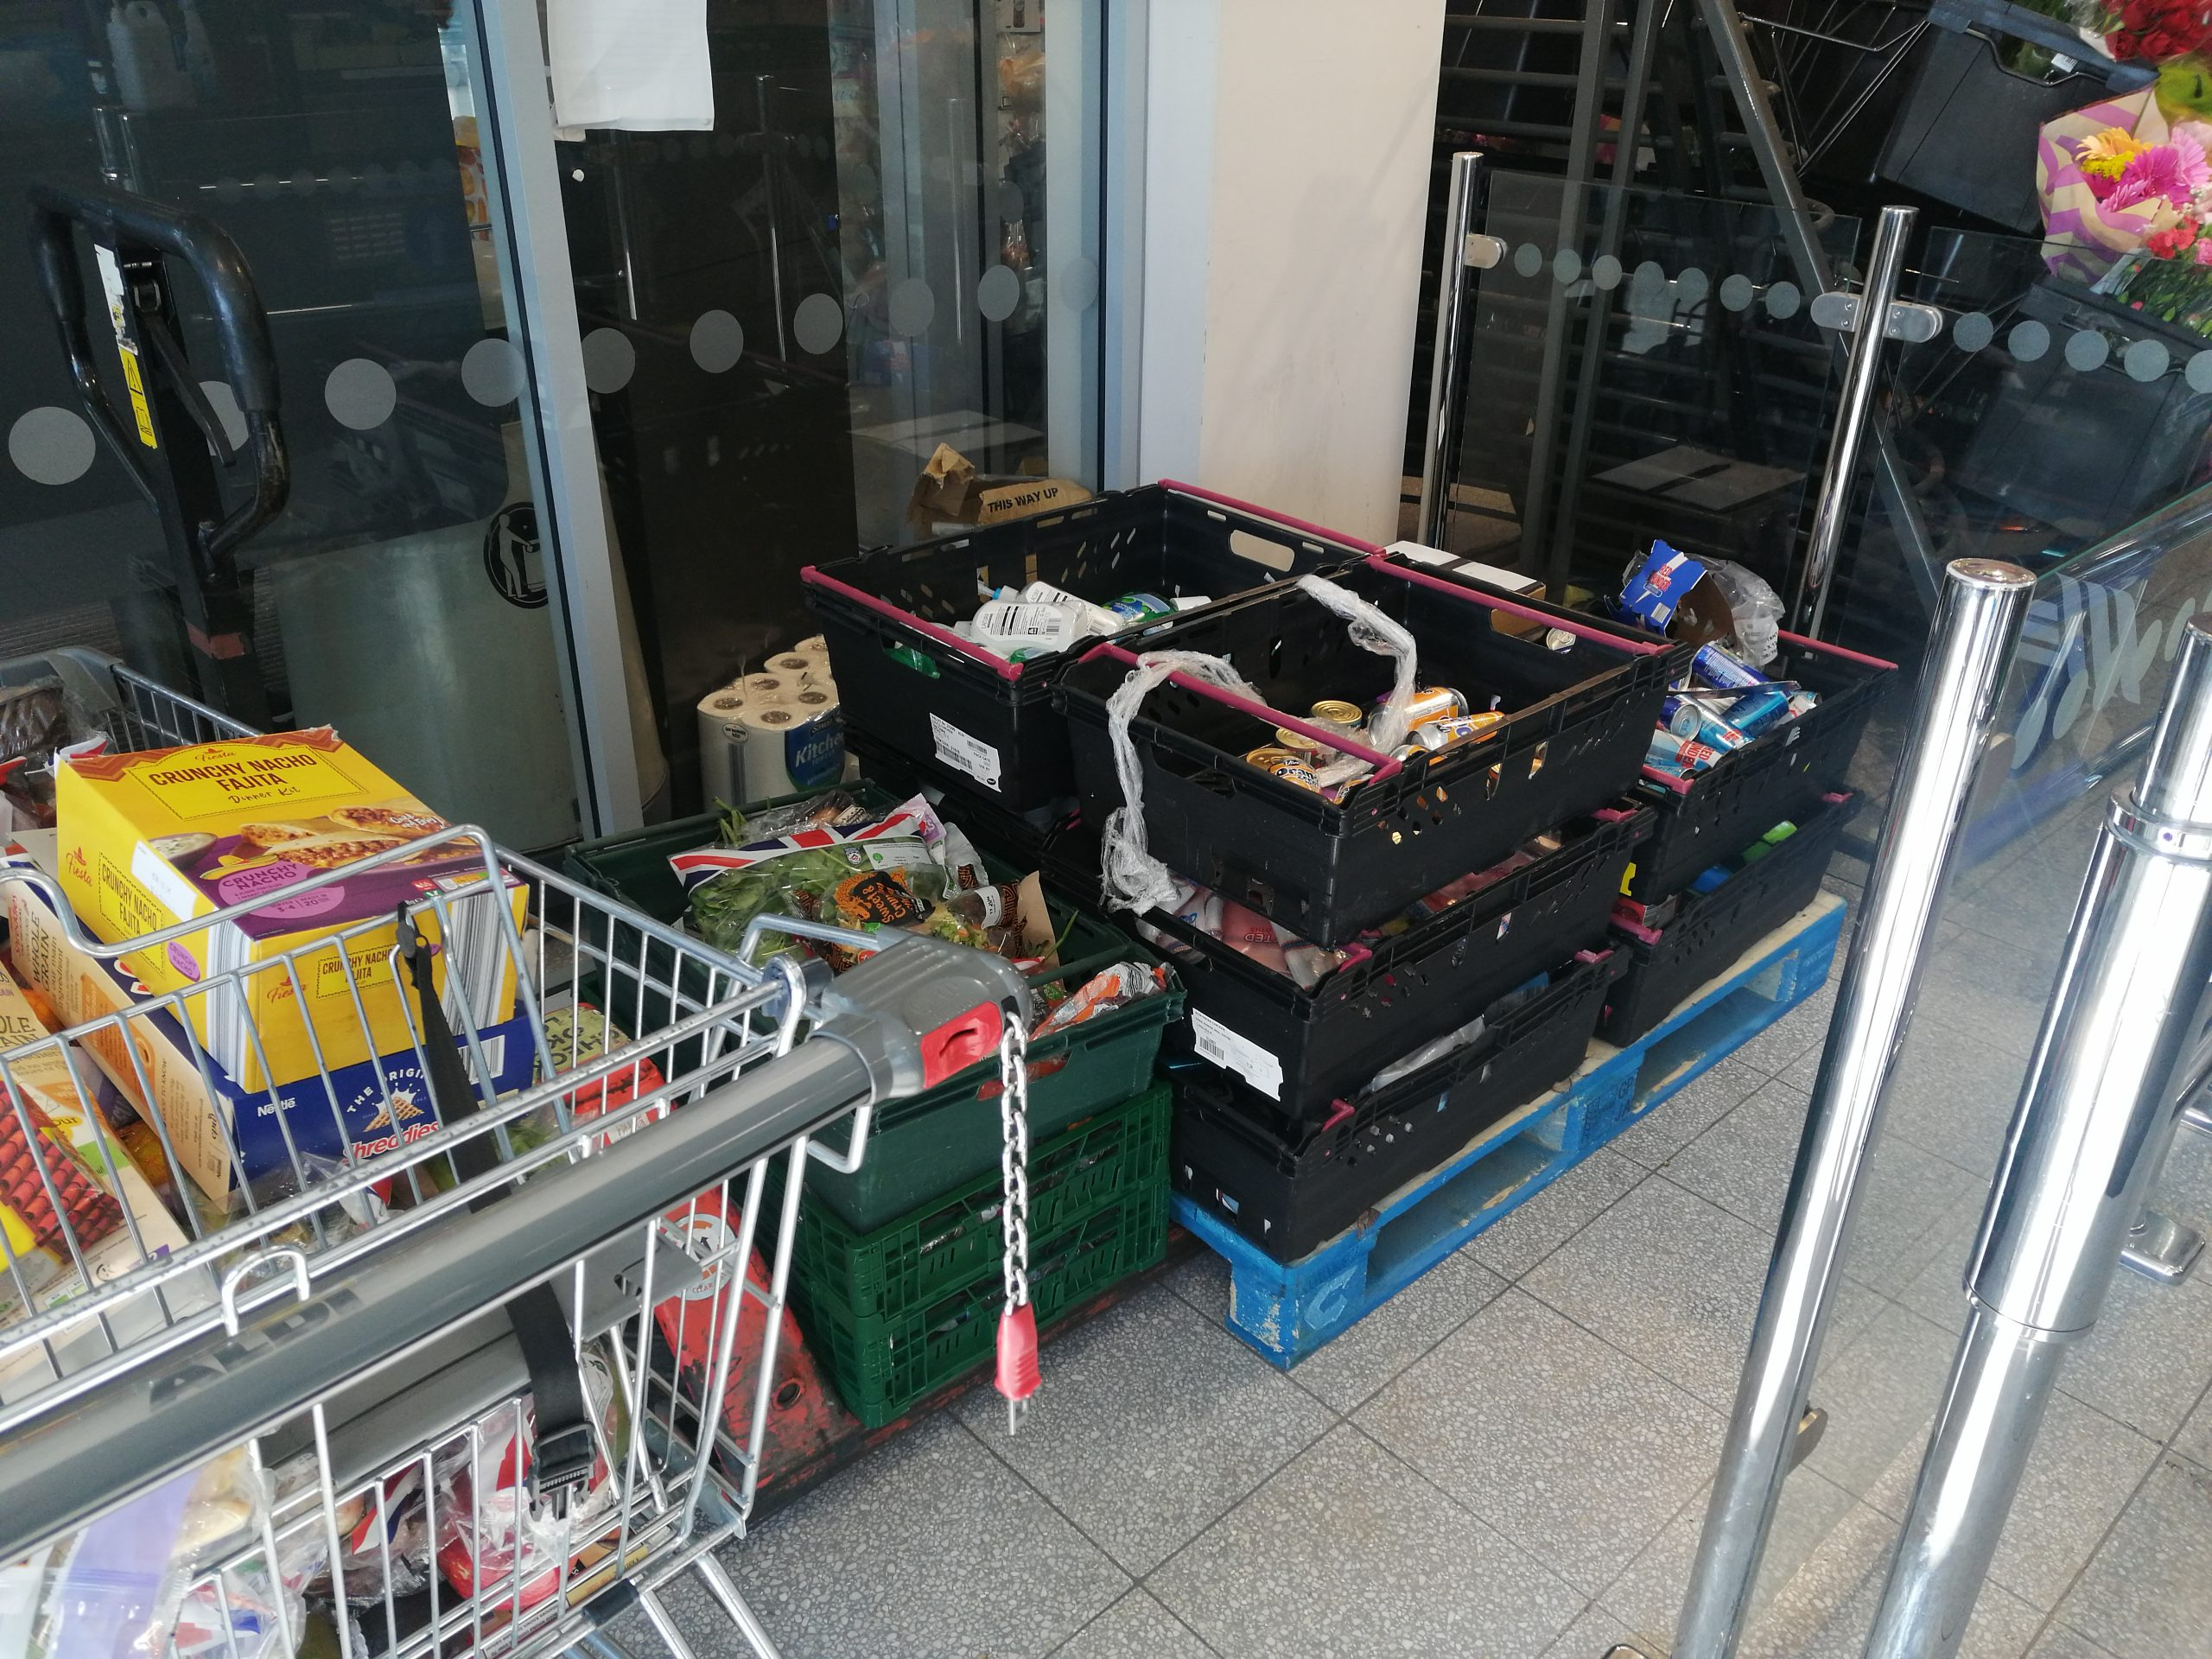 Thank you for the support of our local stores. Lots of families will be happy